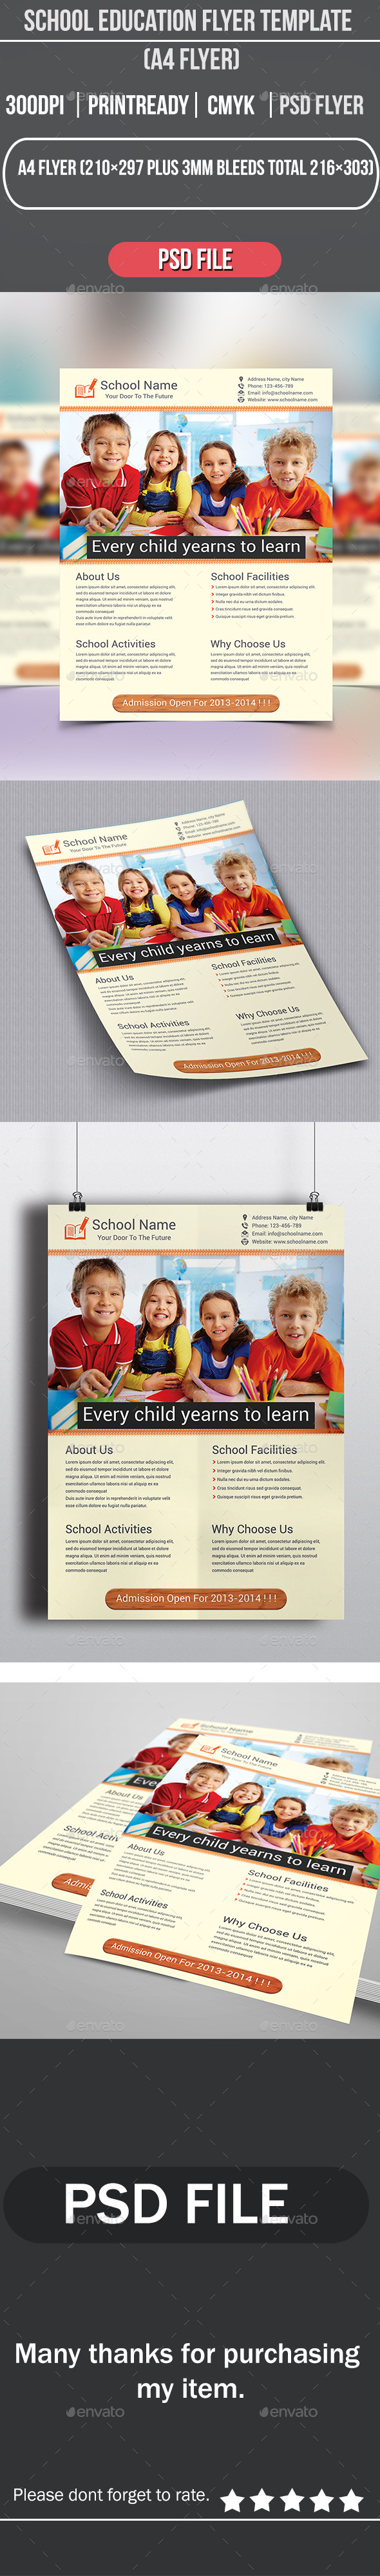 GraphicRiver School Education Flyer Template 8968585